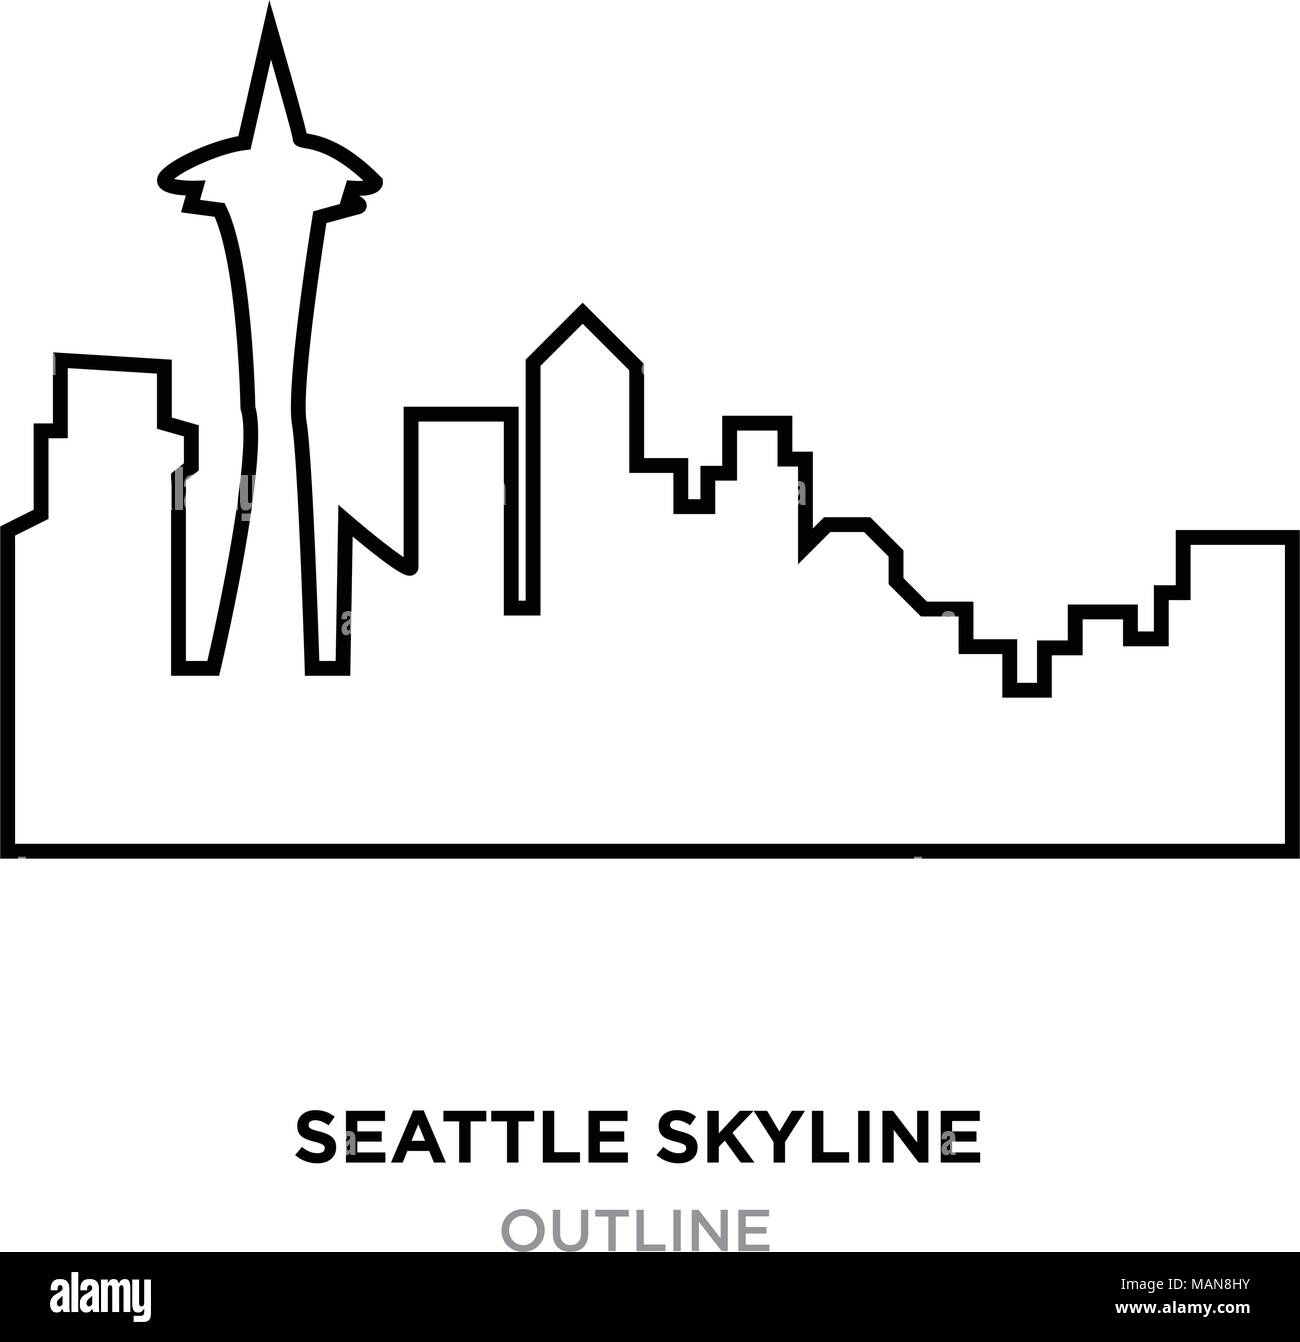 Seattle Skyline Outline On White Background, Vector